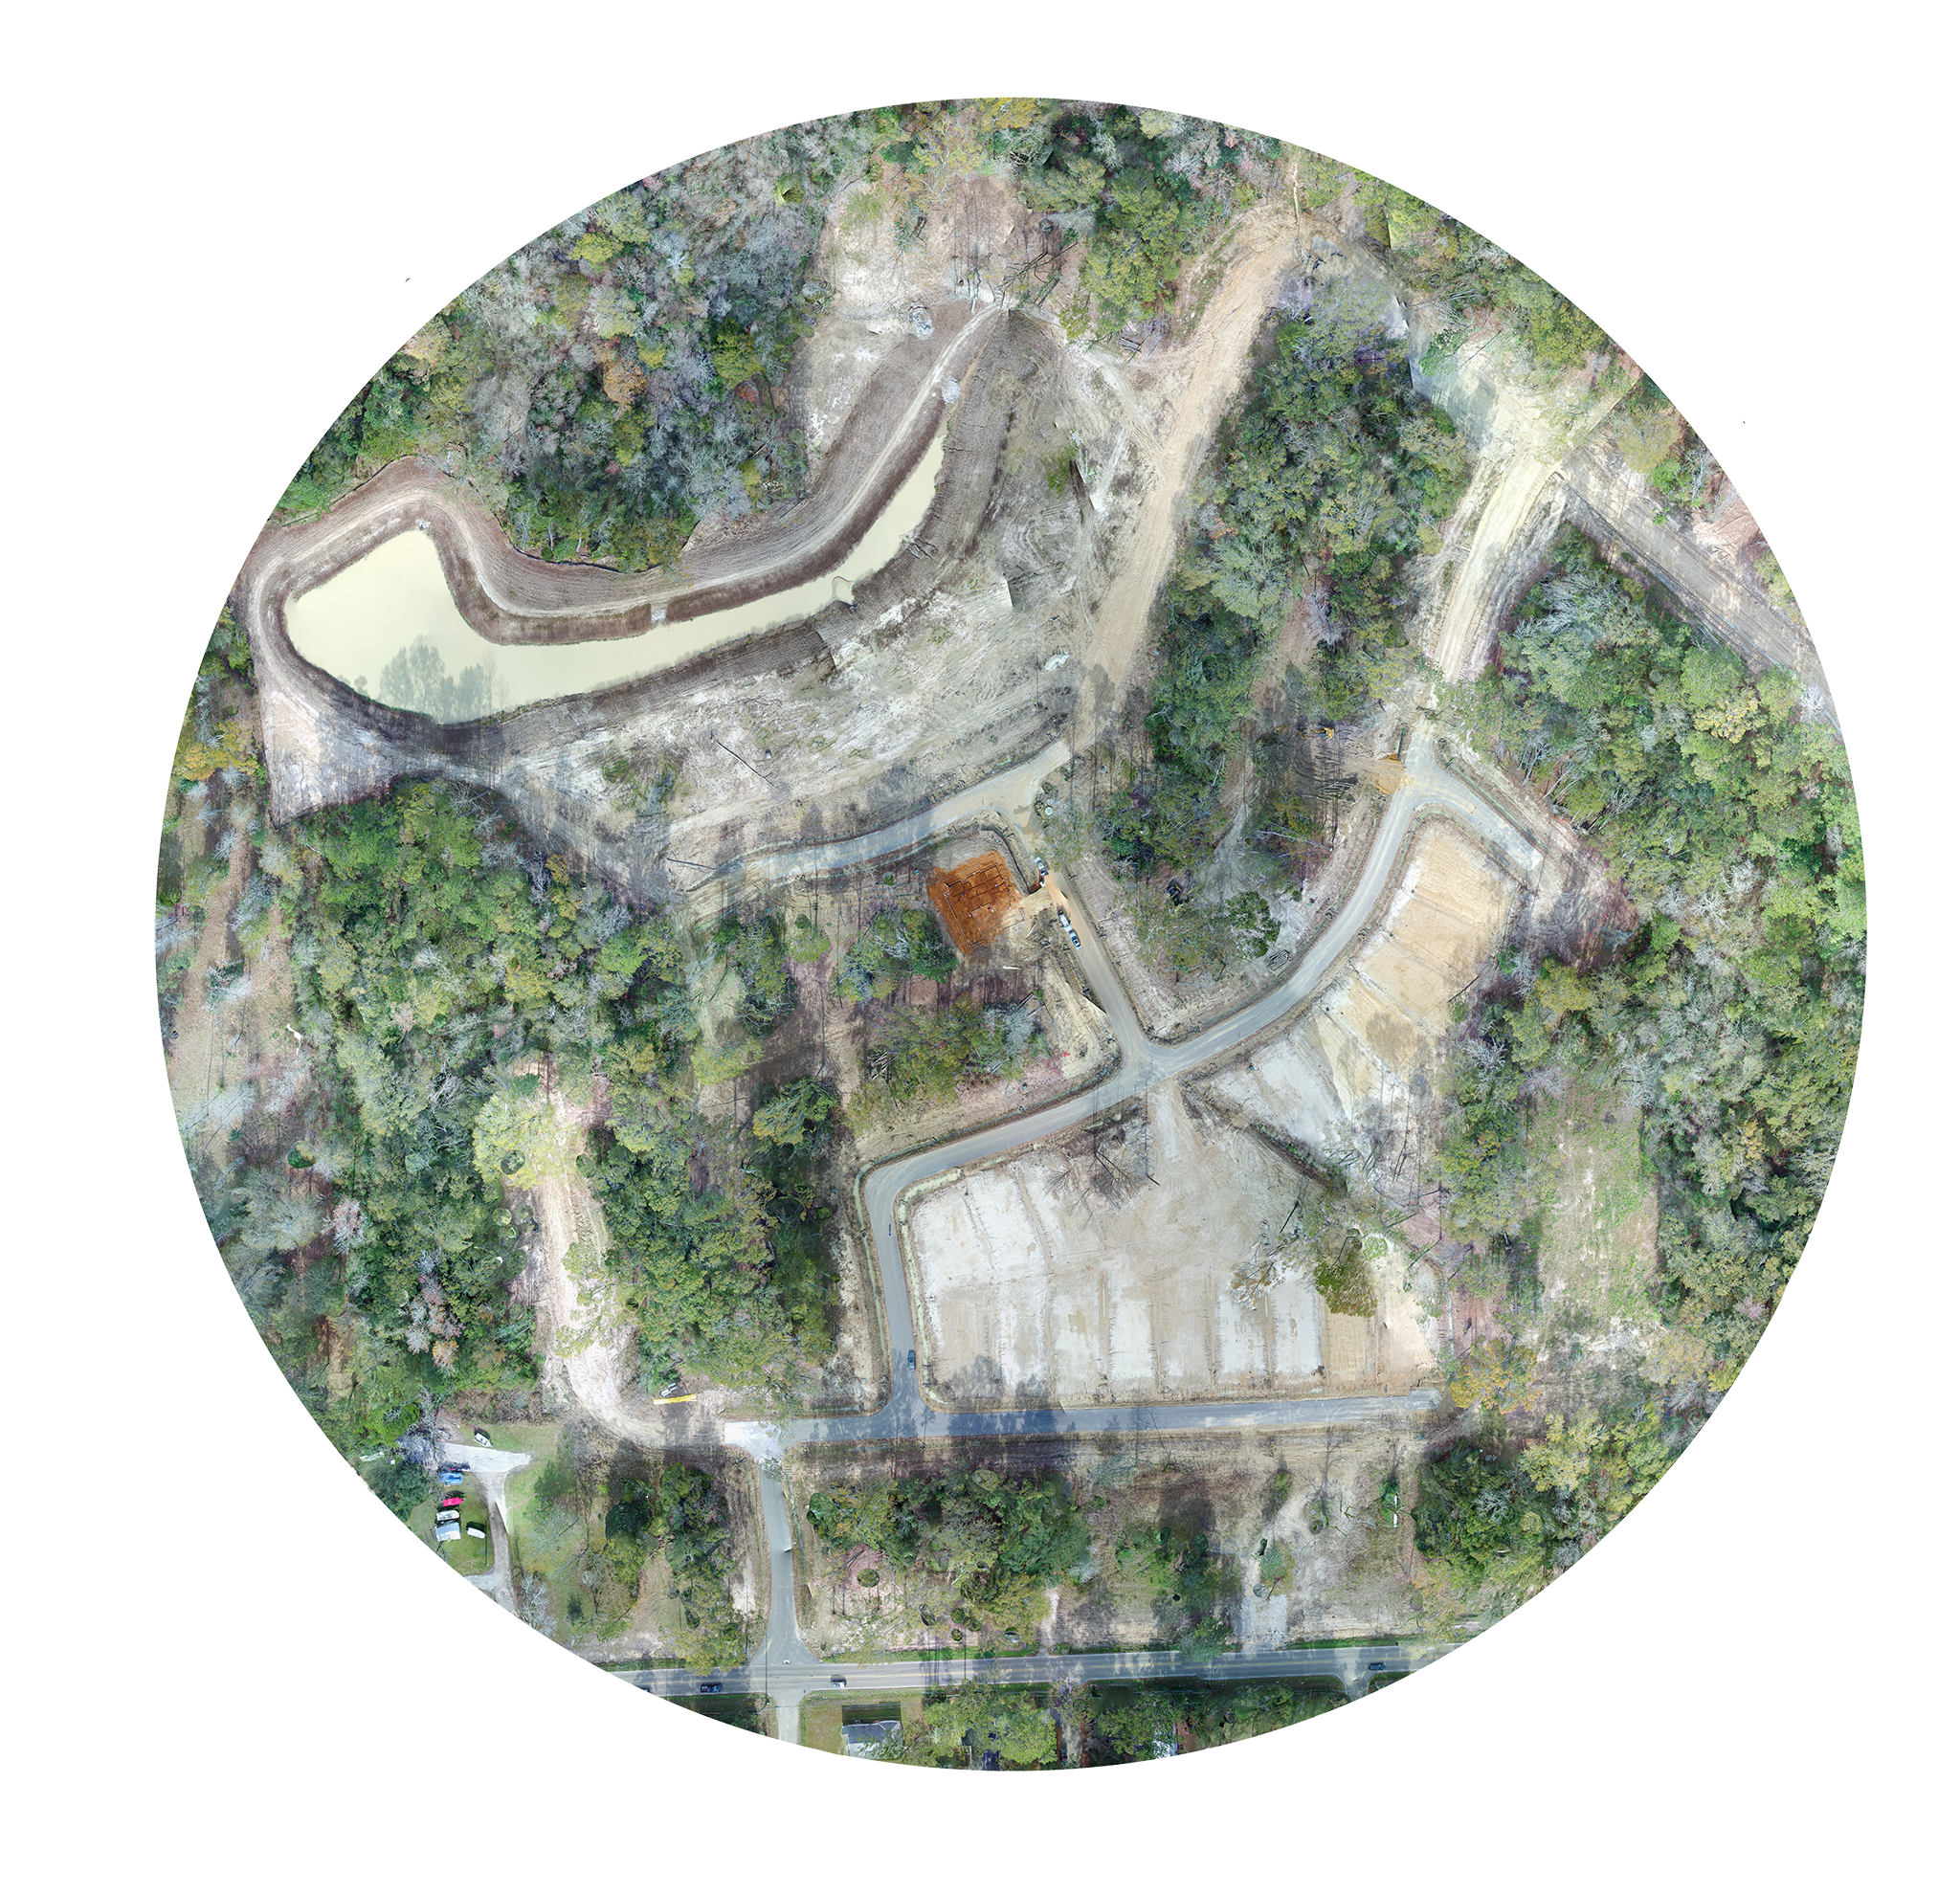 arial view.png